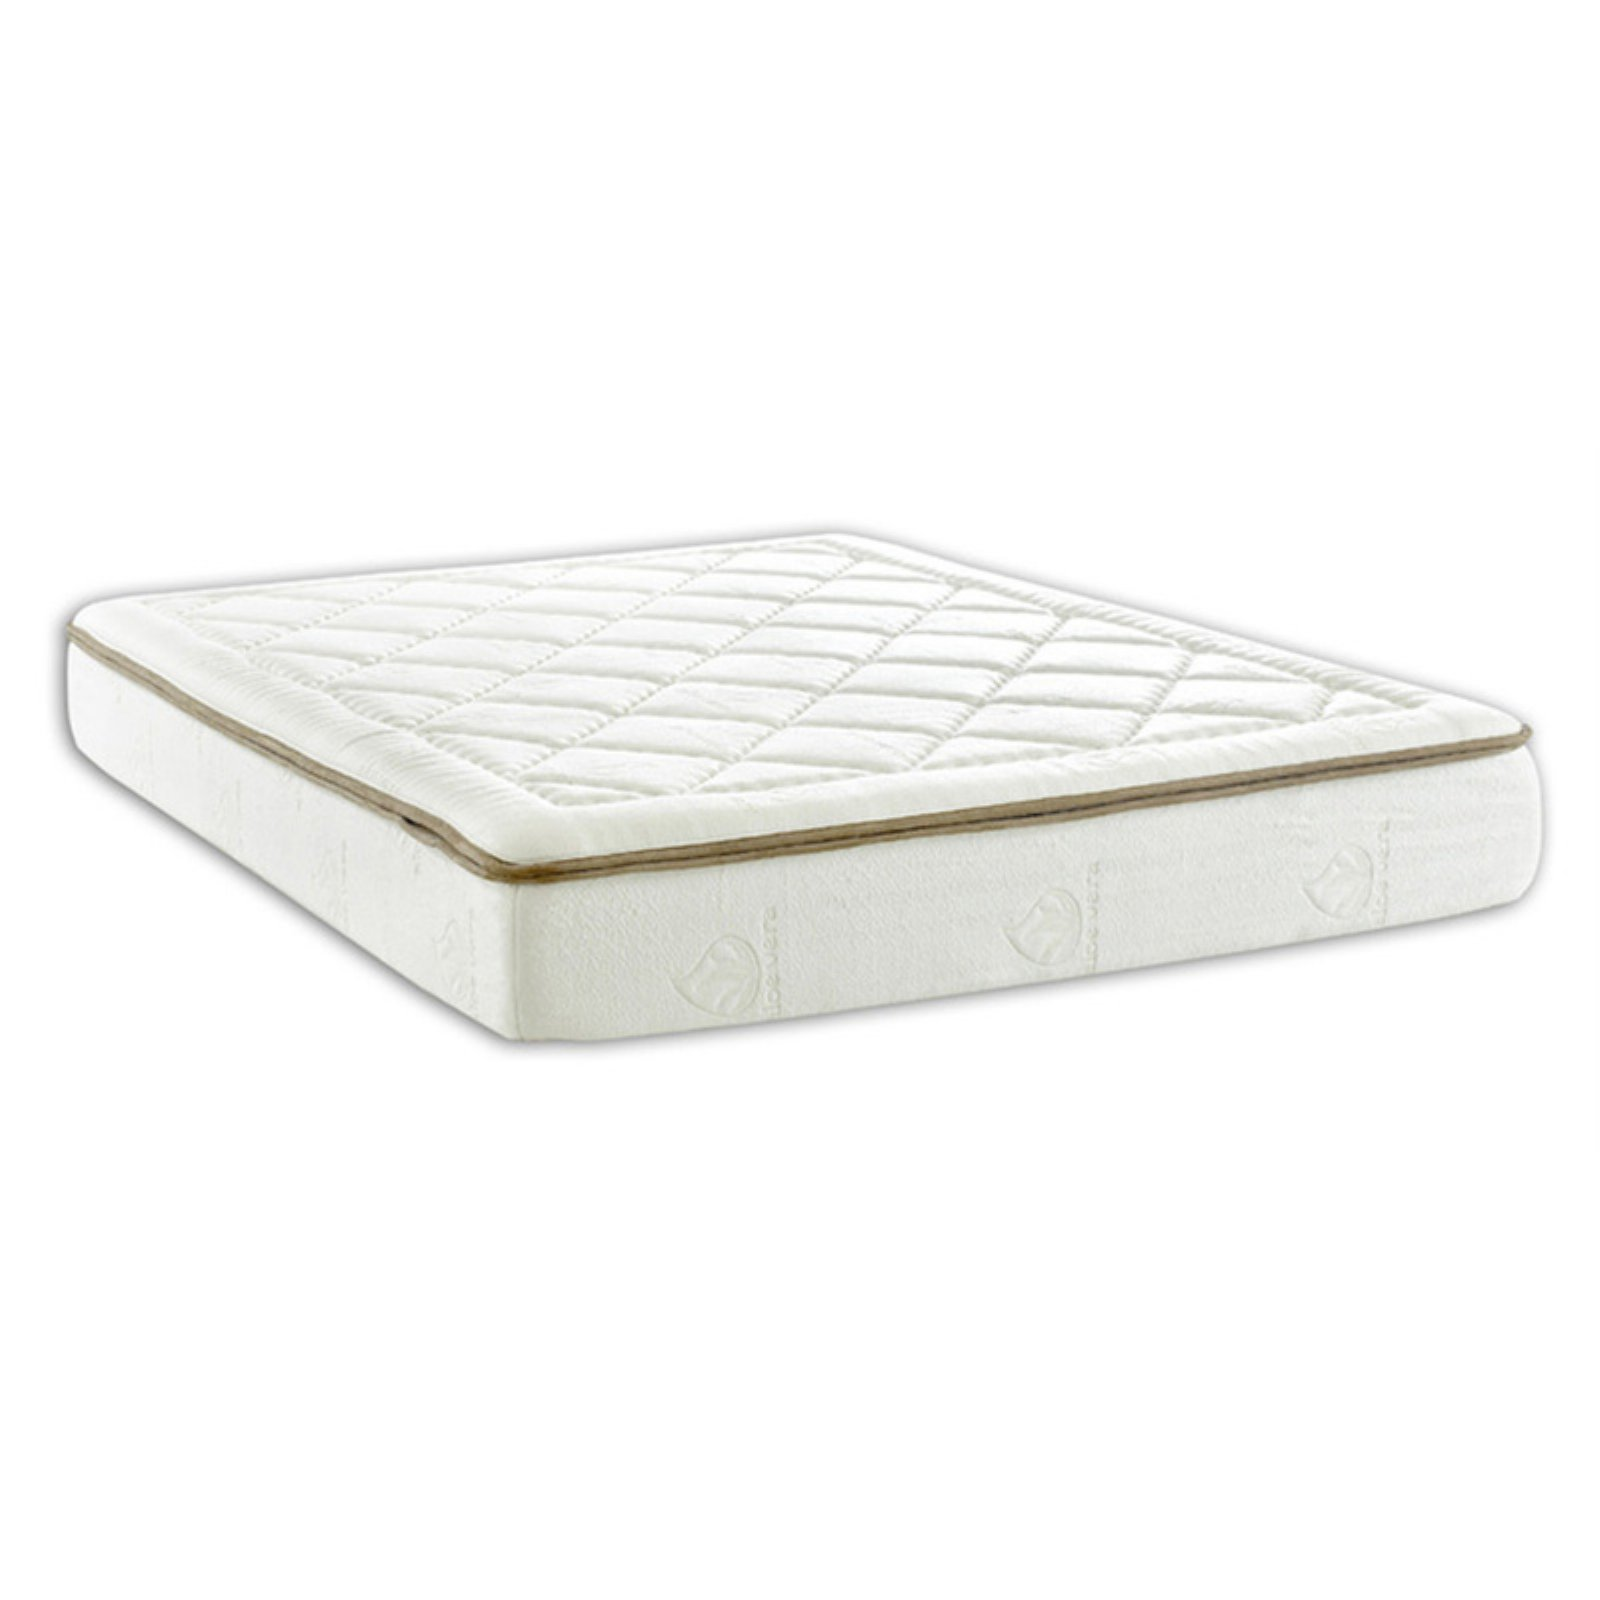 Enso Sleep System Dream Weaver Mattress